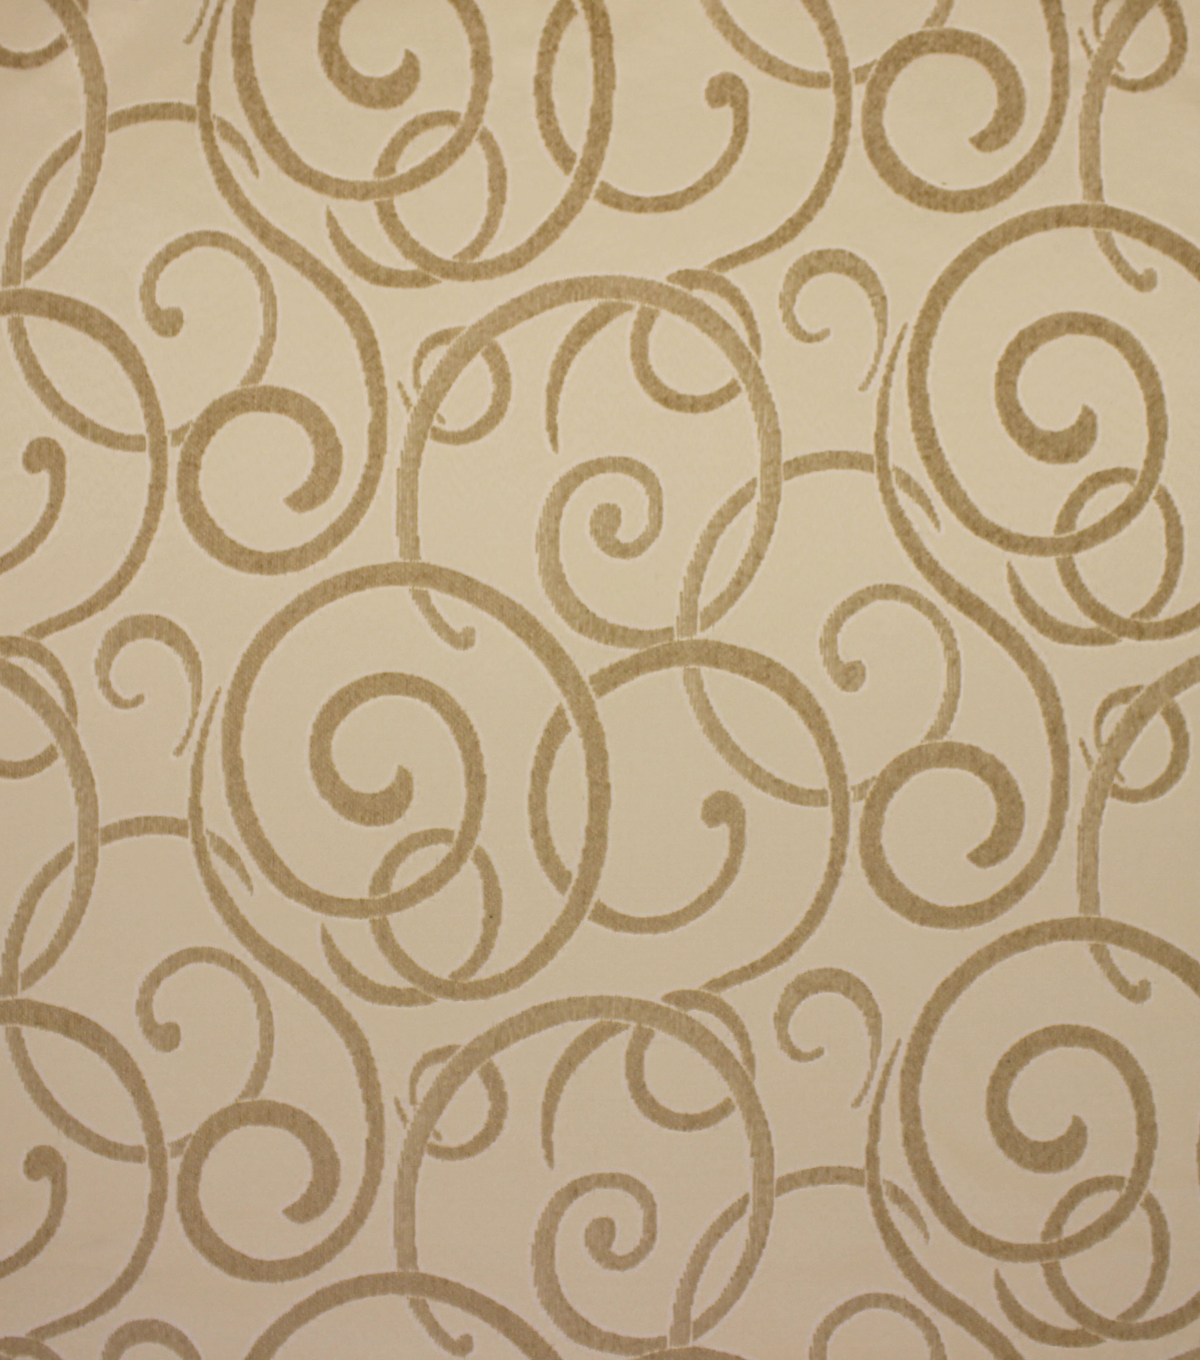 Home Decor 8\u0022x8\u0022 Fabric Swatch-Upholstery Fabric Barrow M6767-5804 Alabaster